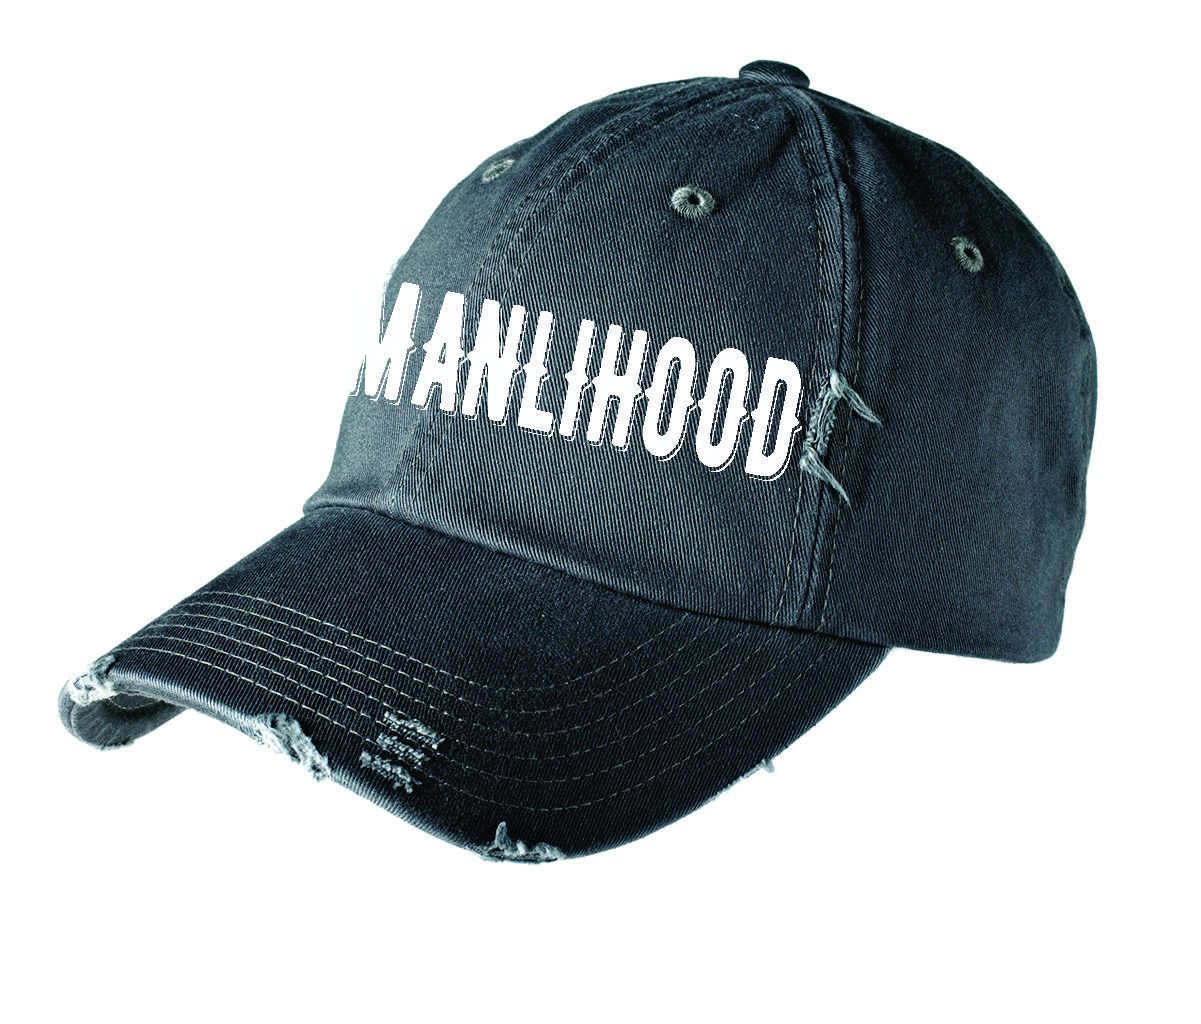 Manlihood Distressed Hat  be38be8e0274